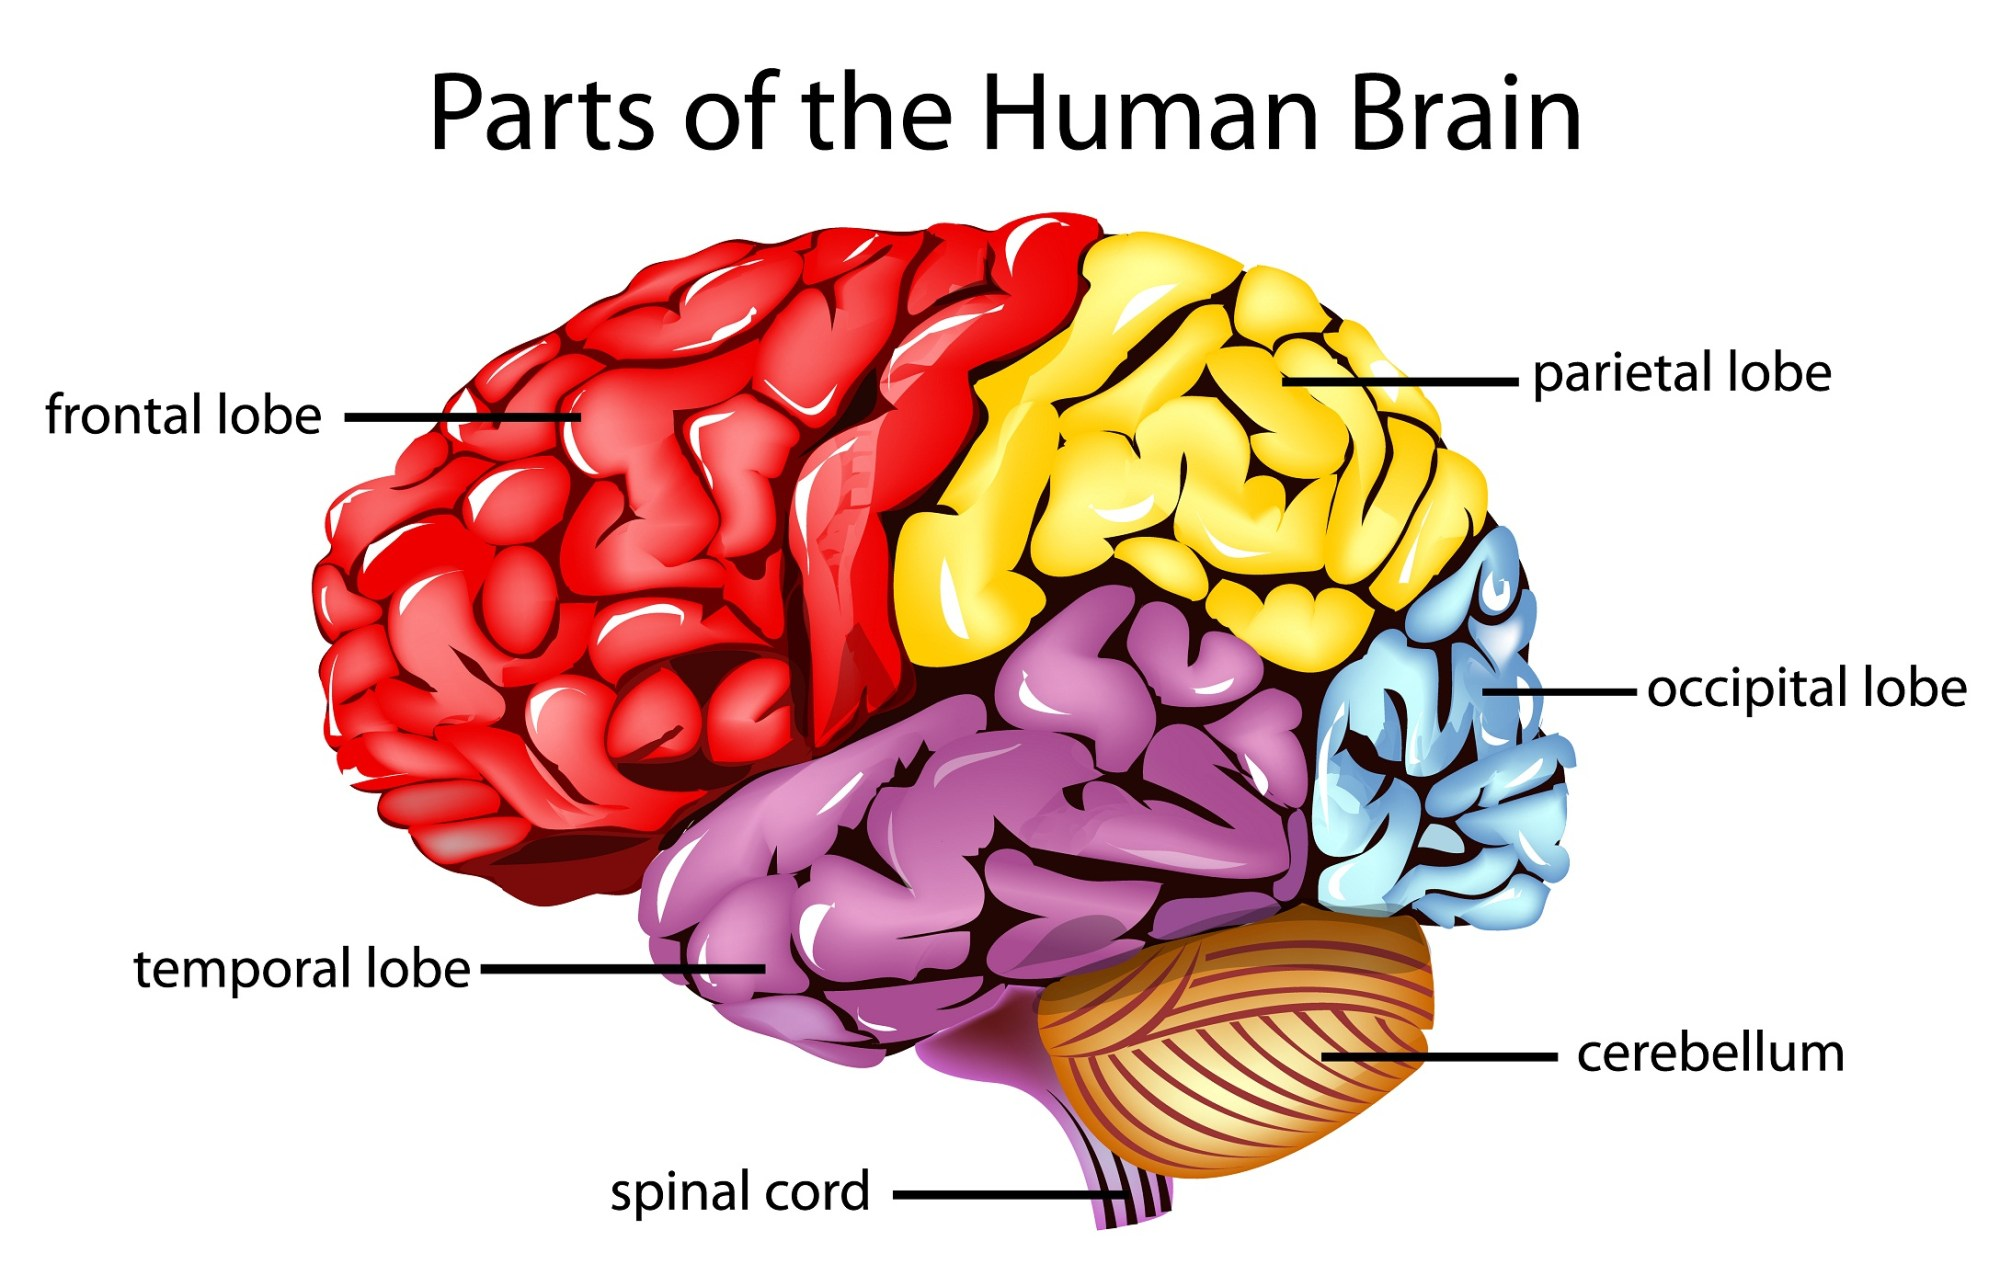 hight resolution of brain diagram unlabeled 391 unlabeled brain diagram thing that